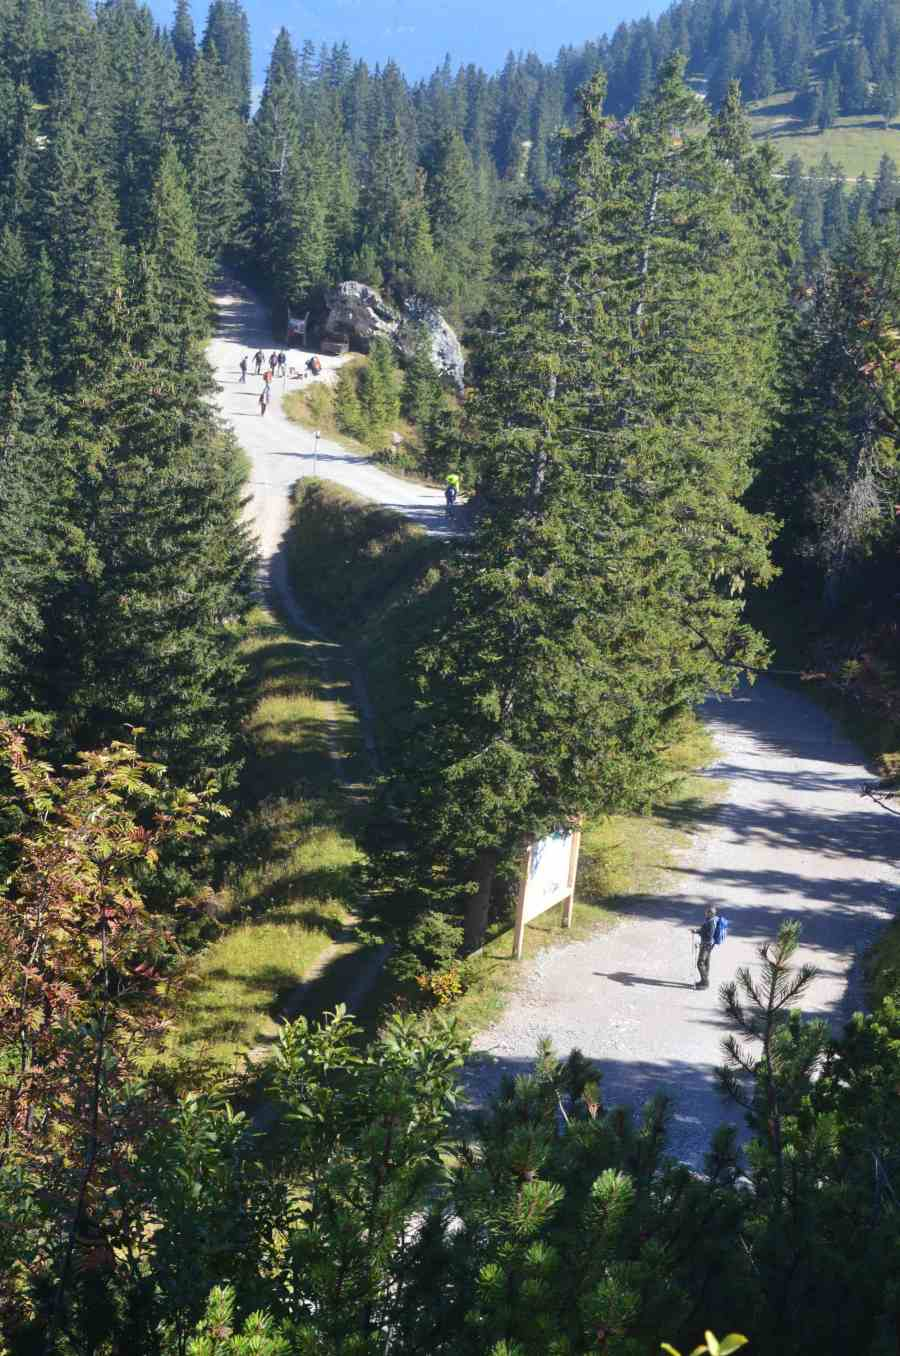 Easy hike from Kreutzeck to Hochalm